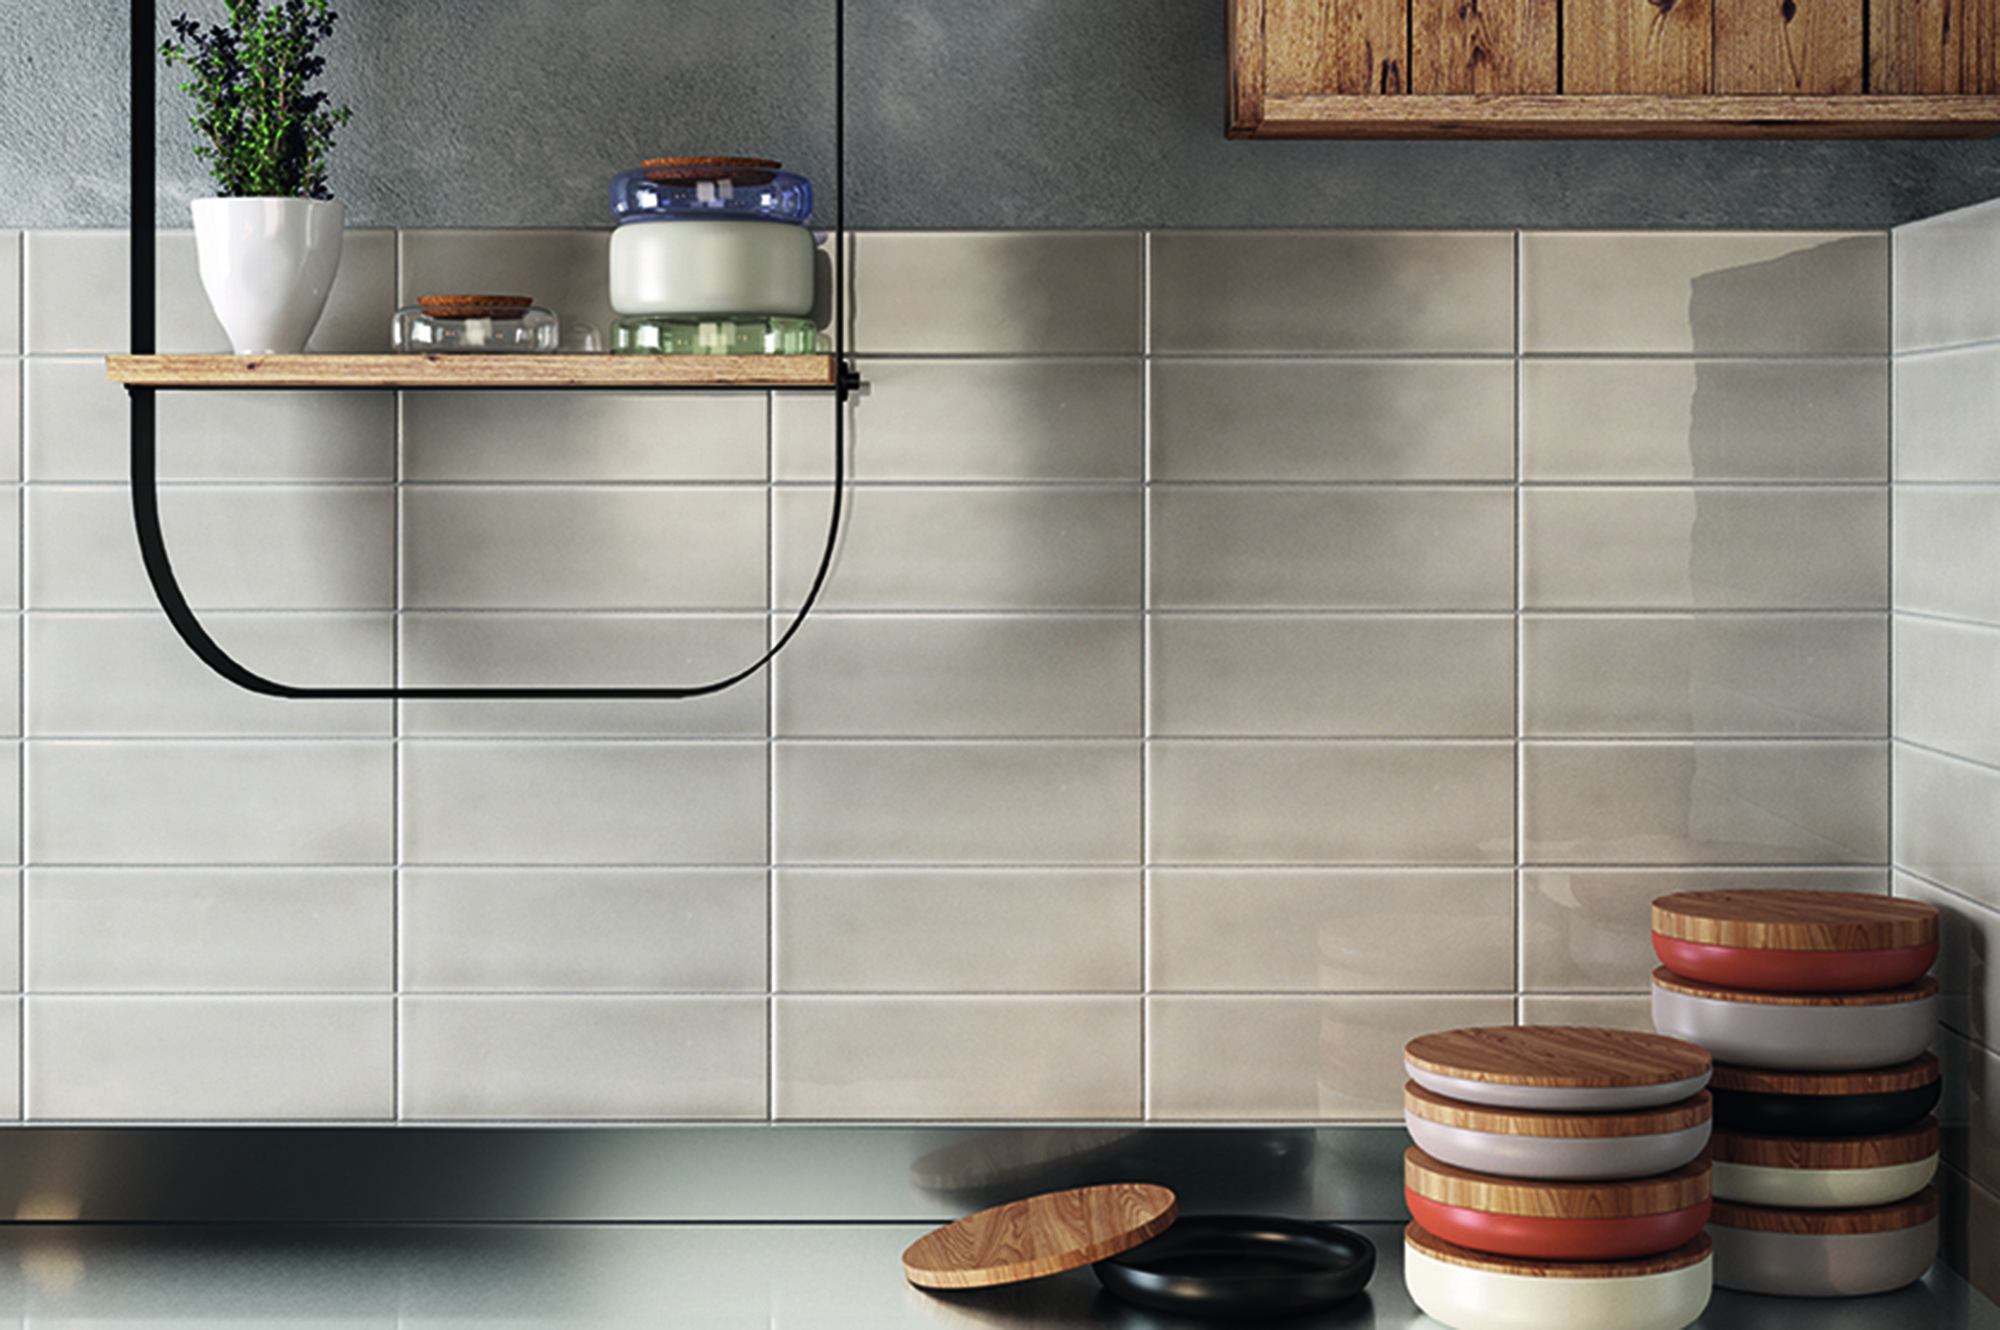 How to Create a Kitchen Backsplash Using Ceramic or Porcelain Tile